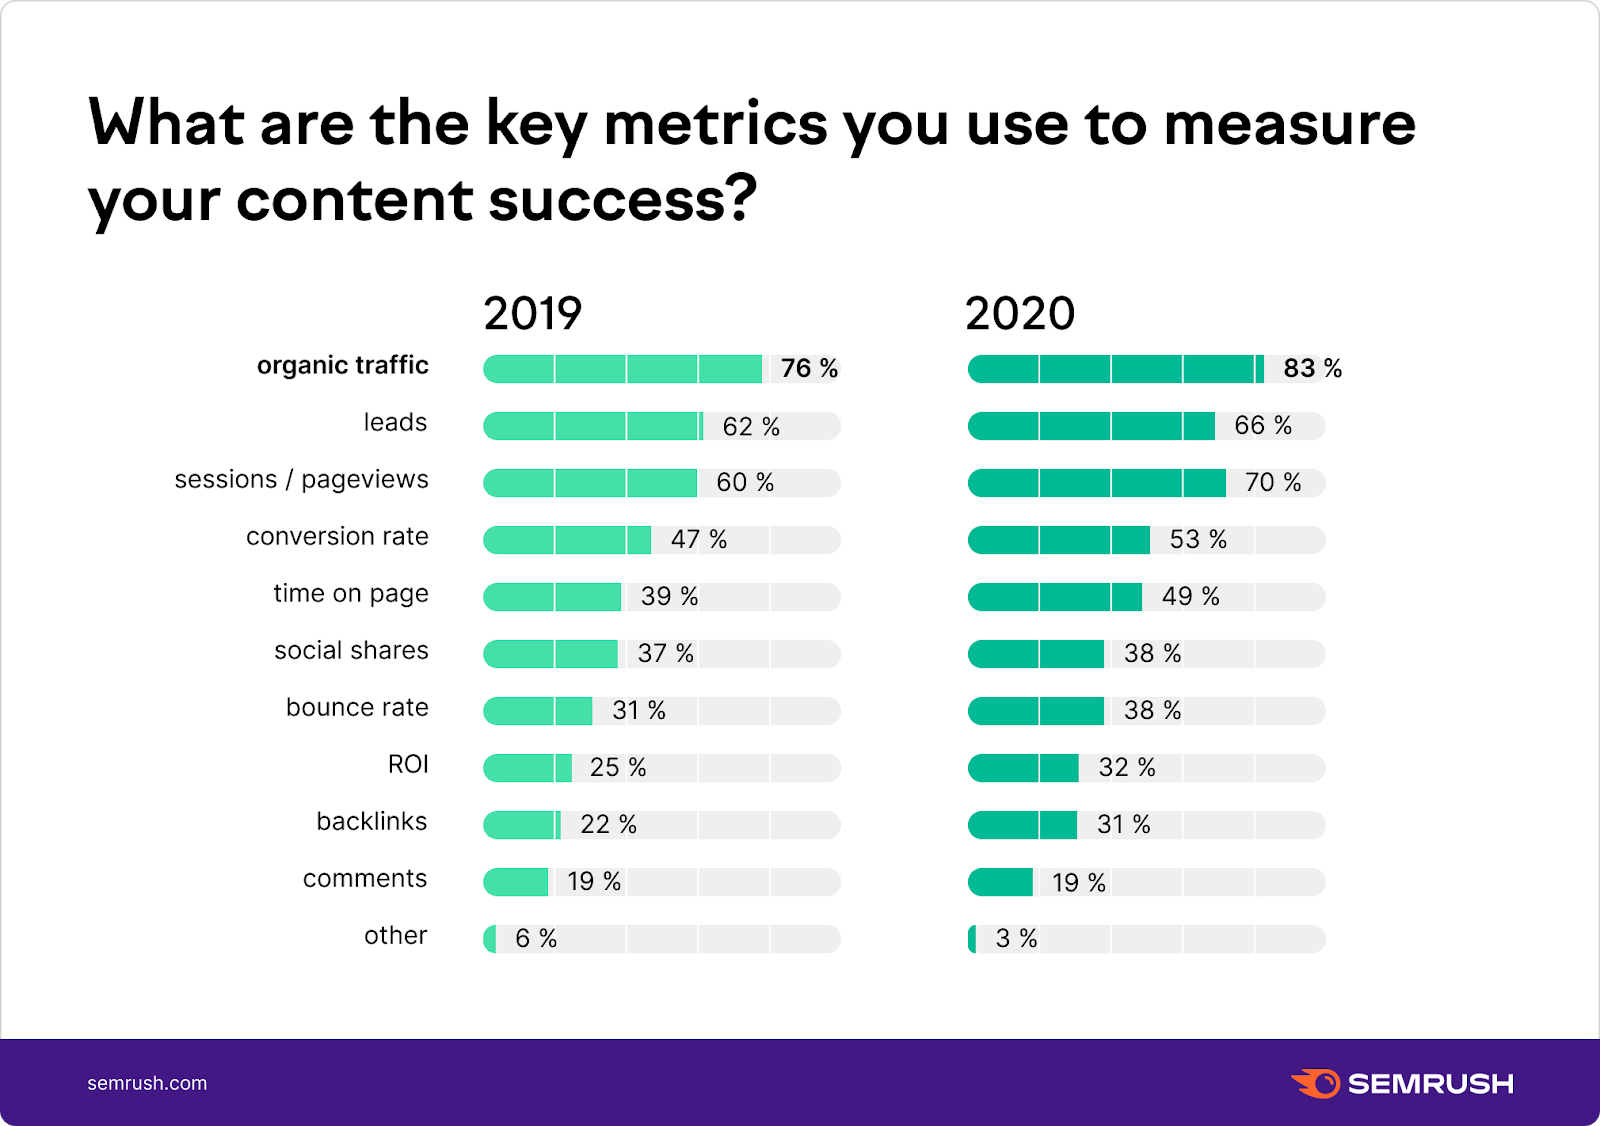 What metrics do you use to measure content success?